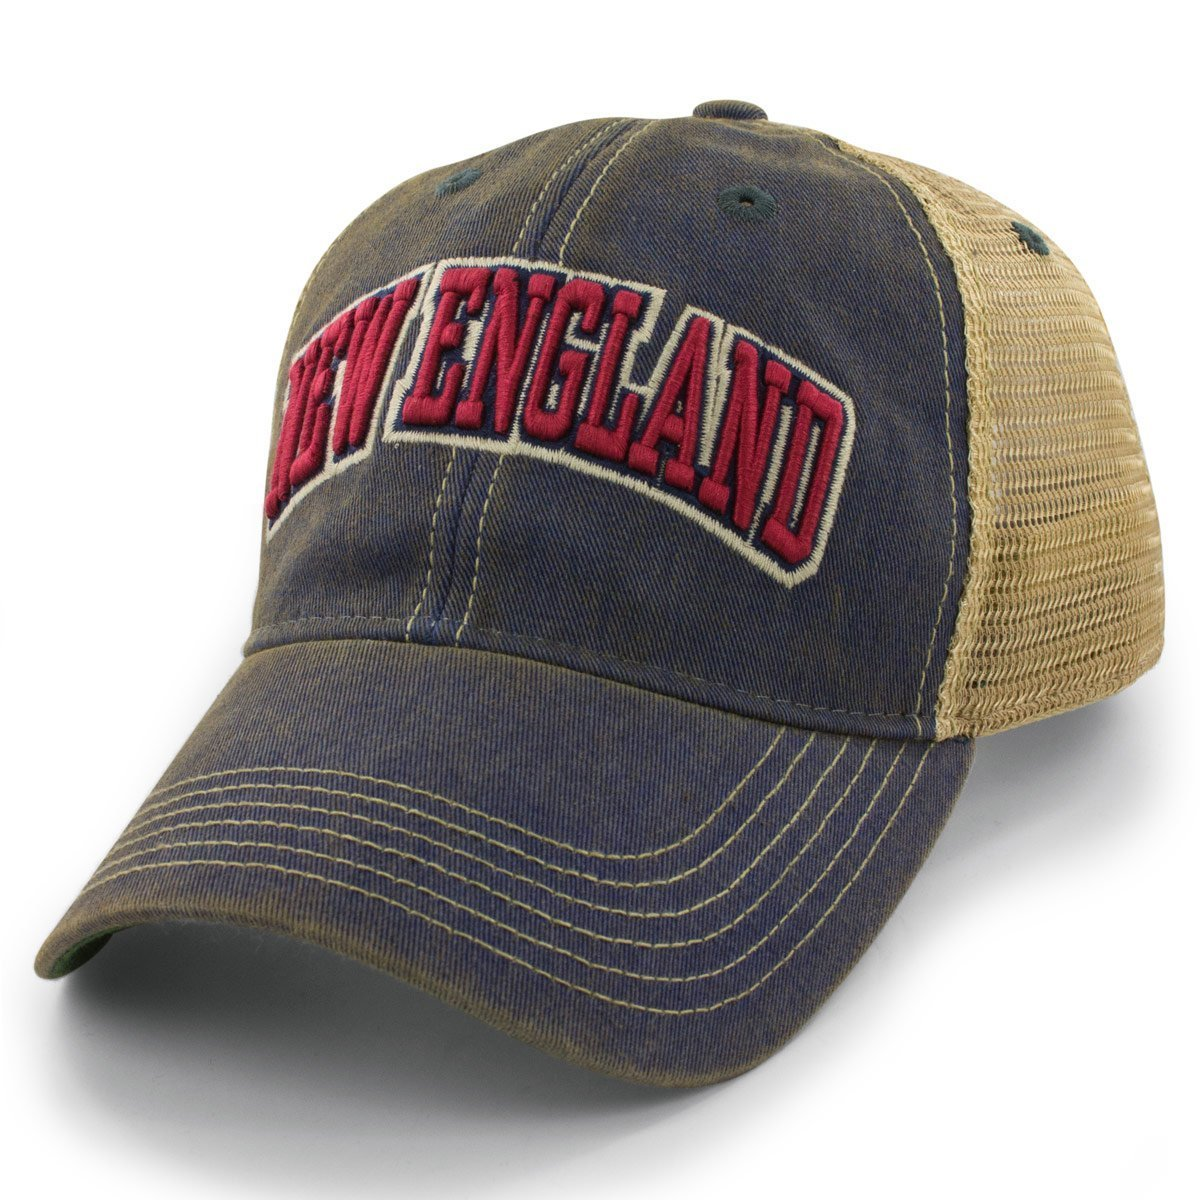 d5cac3dfe Chowdaheadz New England Arch Dirty Water Trucker Hat at Amazon Men's  Clothing store: